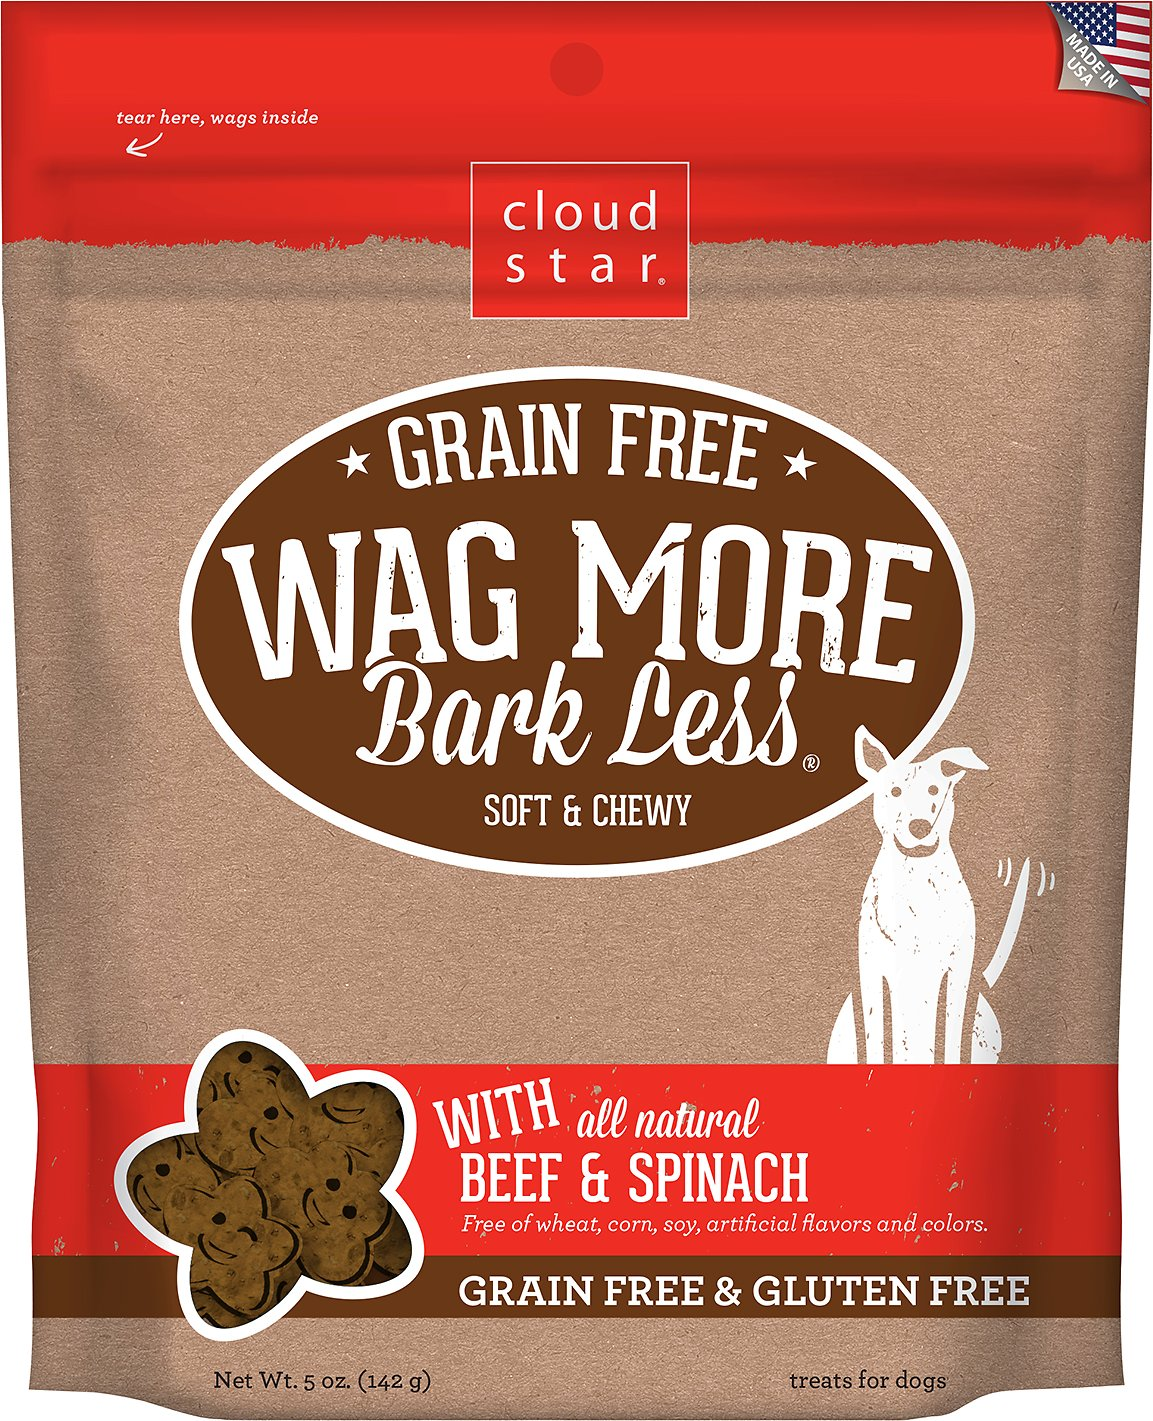 Cloud Star Wag More Bark Less Grain-Free Soft & Chewy with Beef & Spinach Dog Treats, 5-oz bag